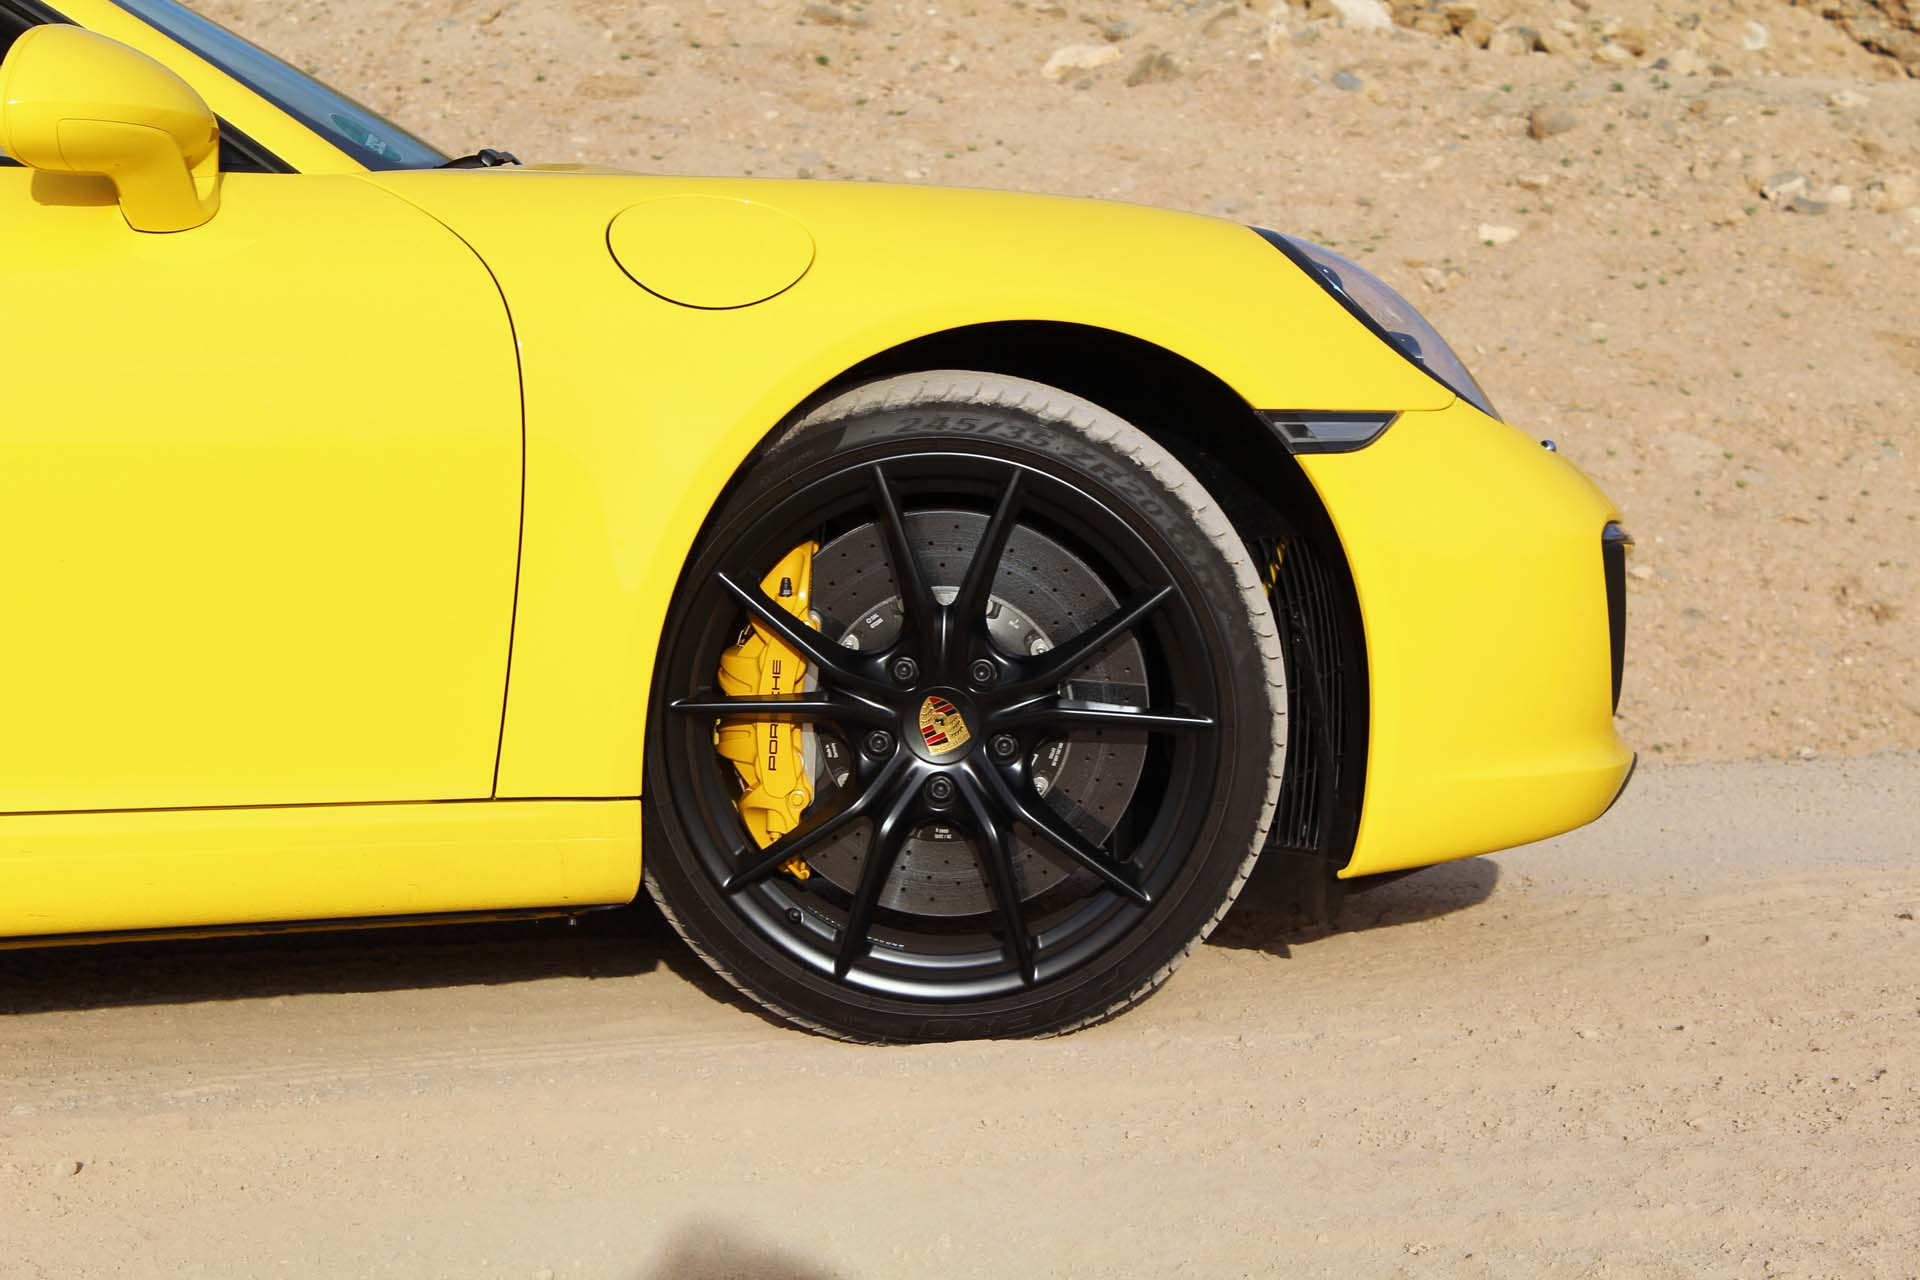 You'll be paying $9730 for these ceramic brakes.